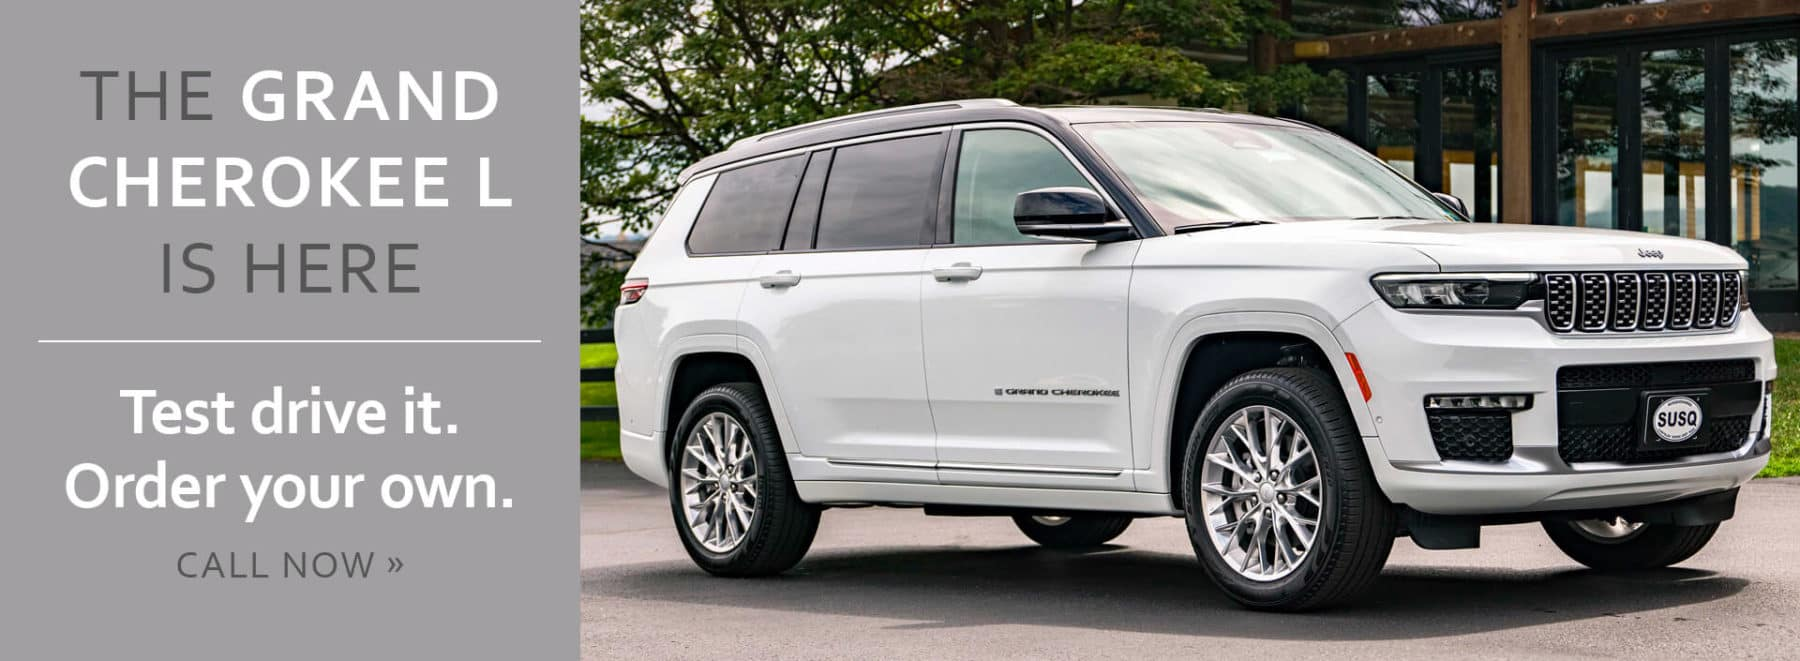 The Grand Cherokee L is here! Test drive one today!